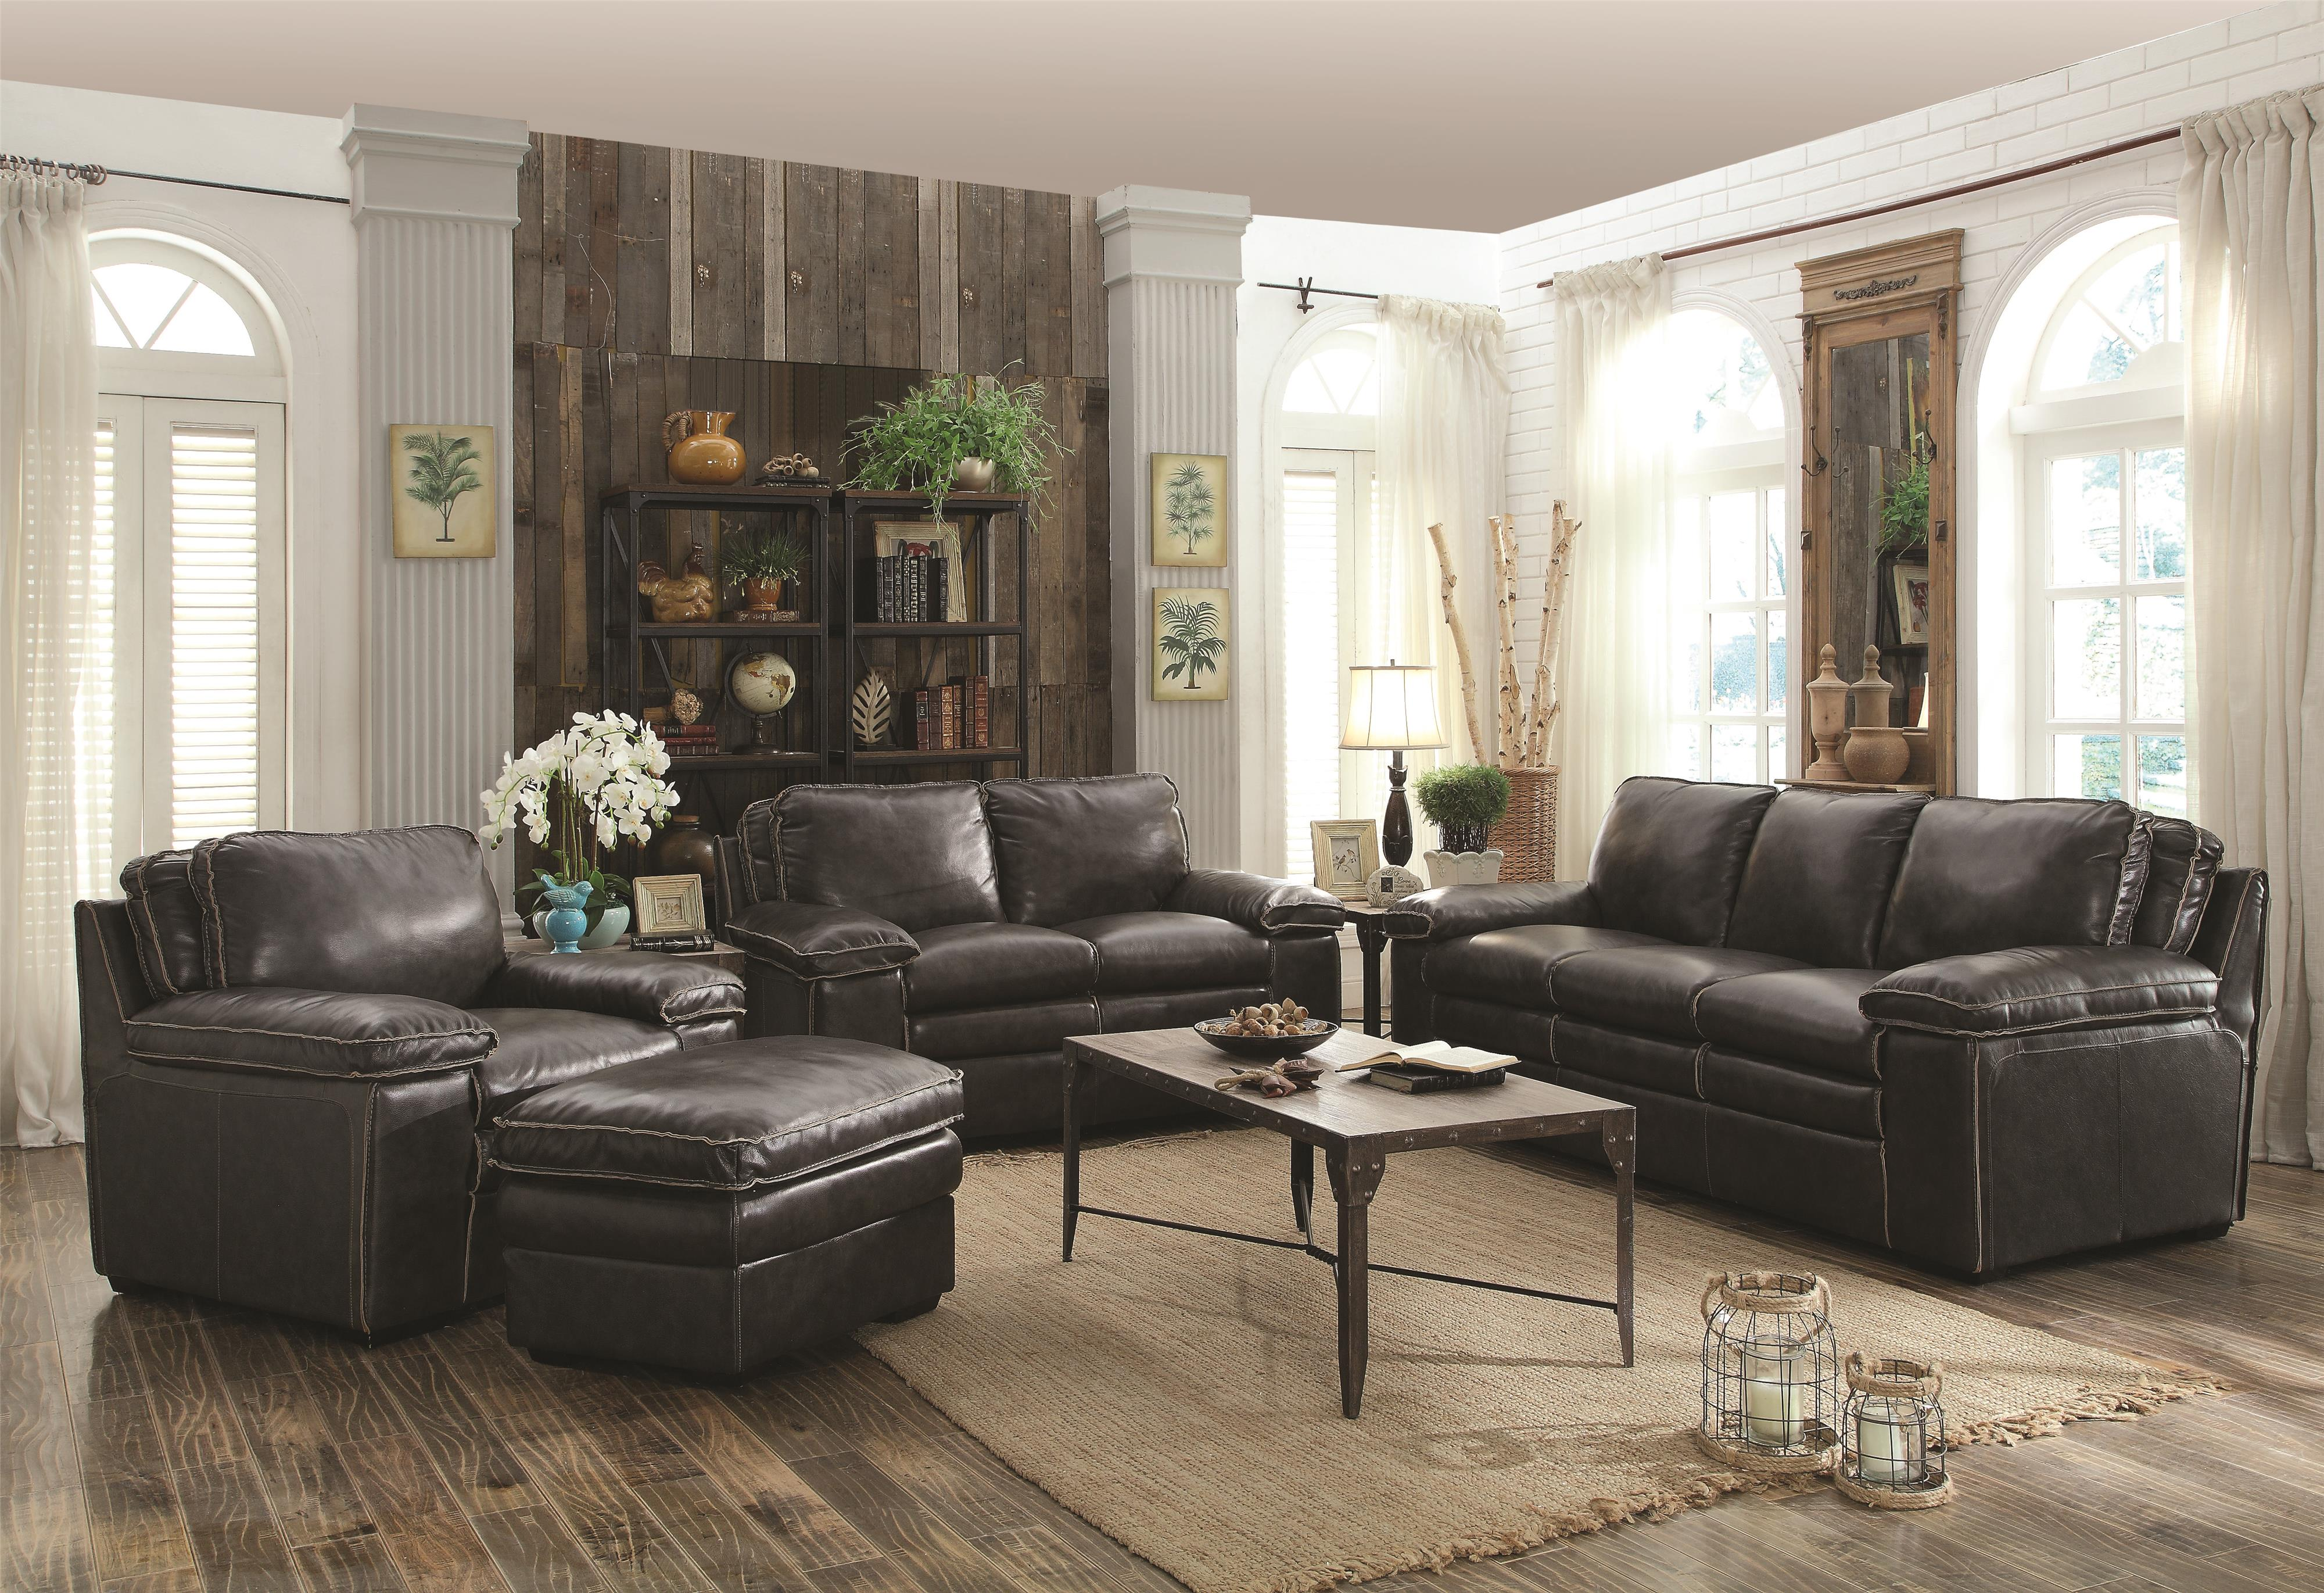 Living Room Sets Dallas Tx regalvale leather living room 505841 - silver state furniture